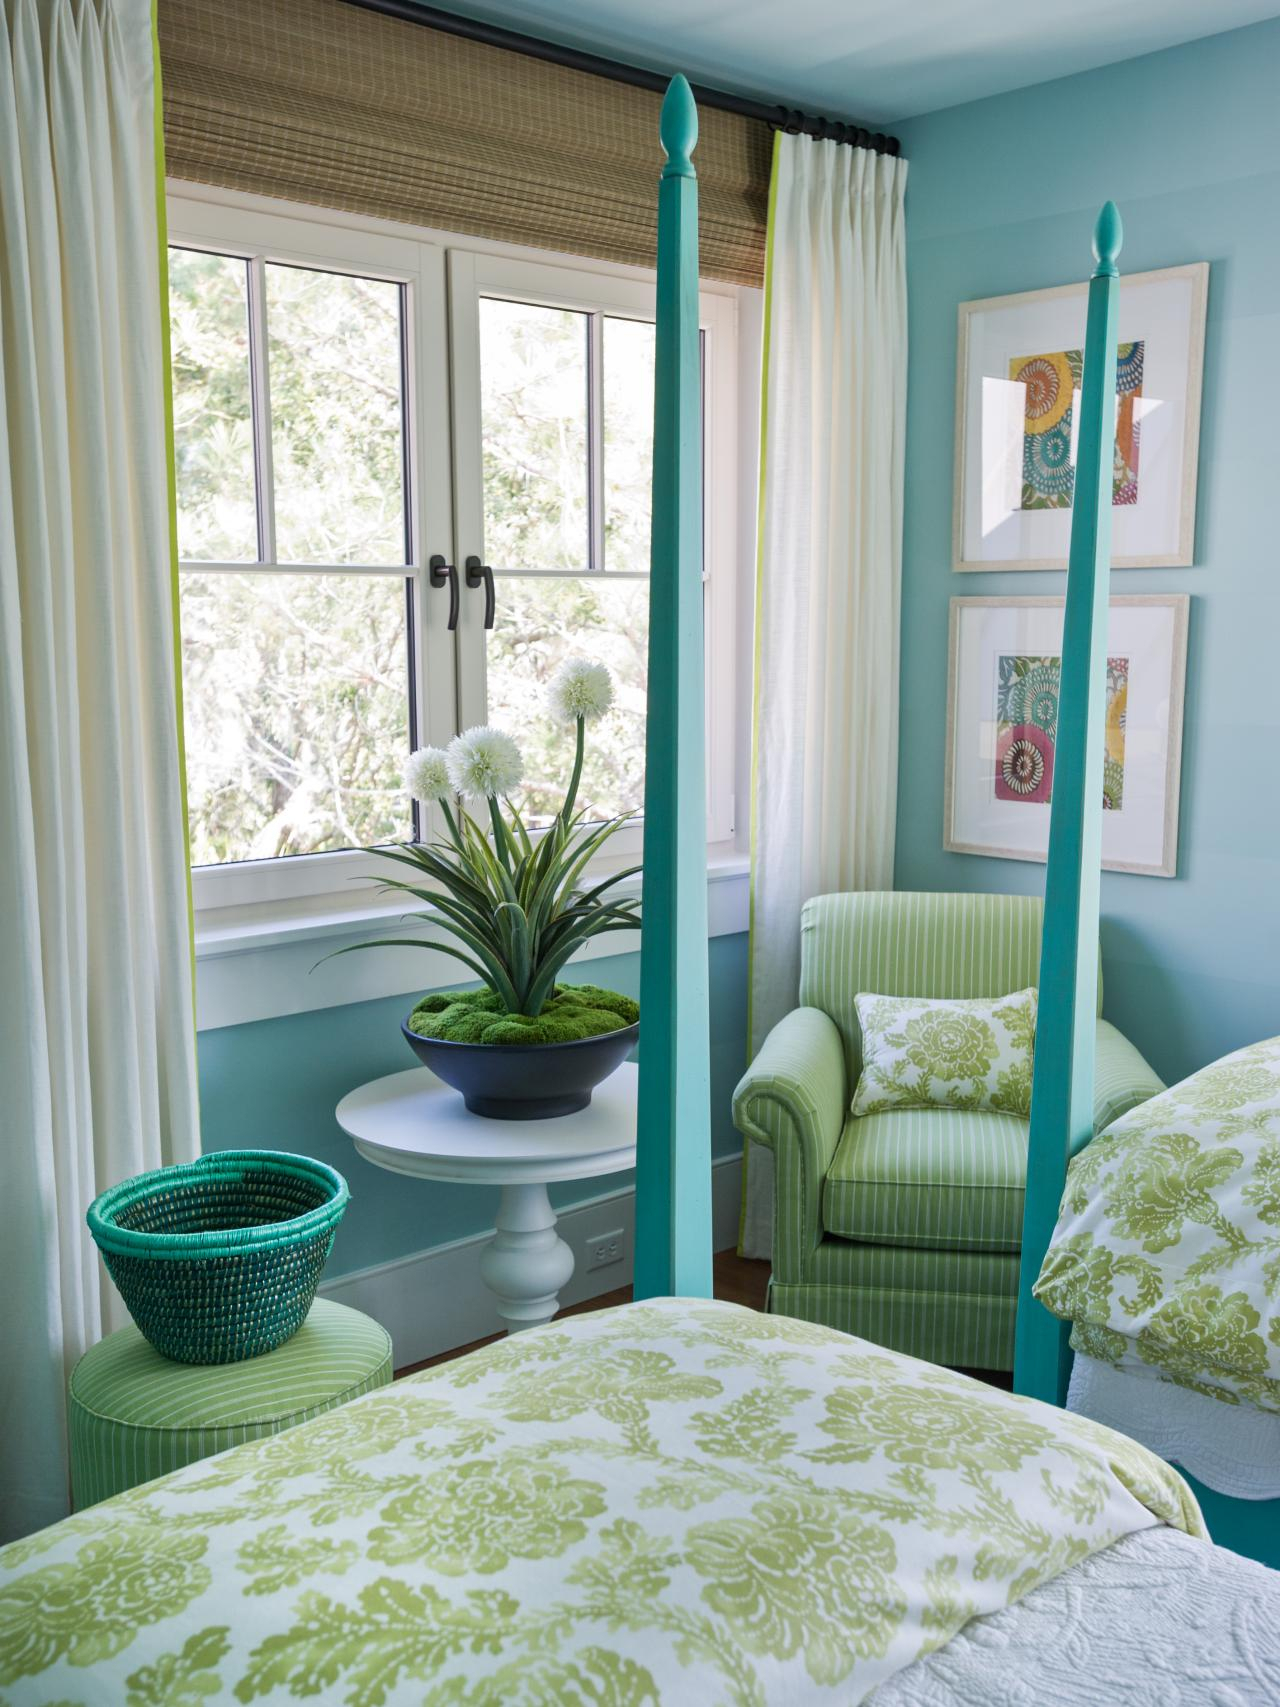 10 Stylish Green And Blue Room Ideas %name